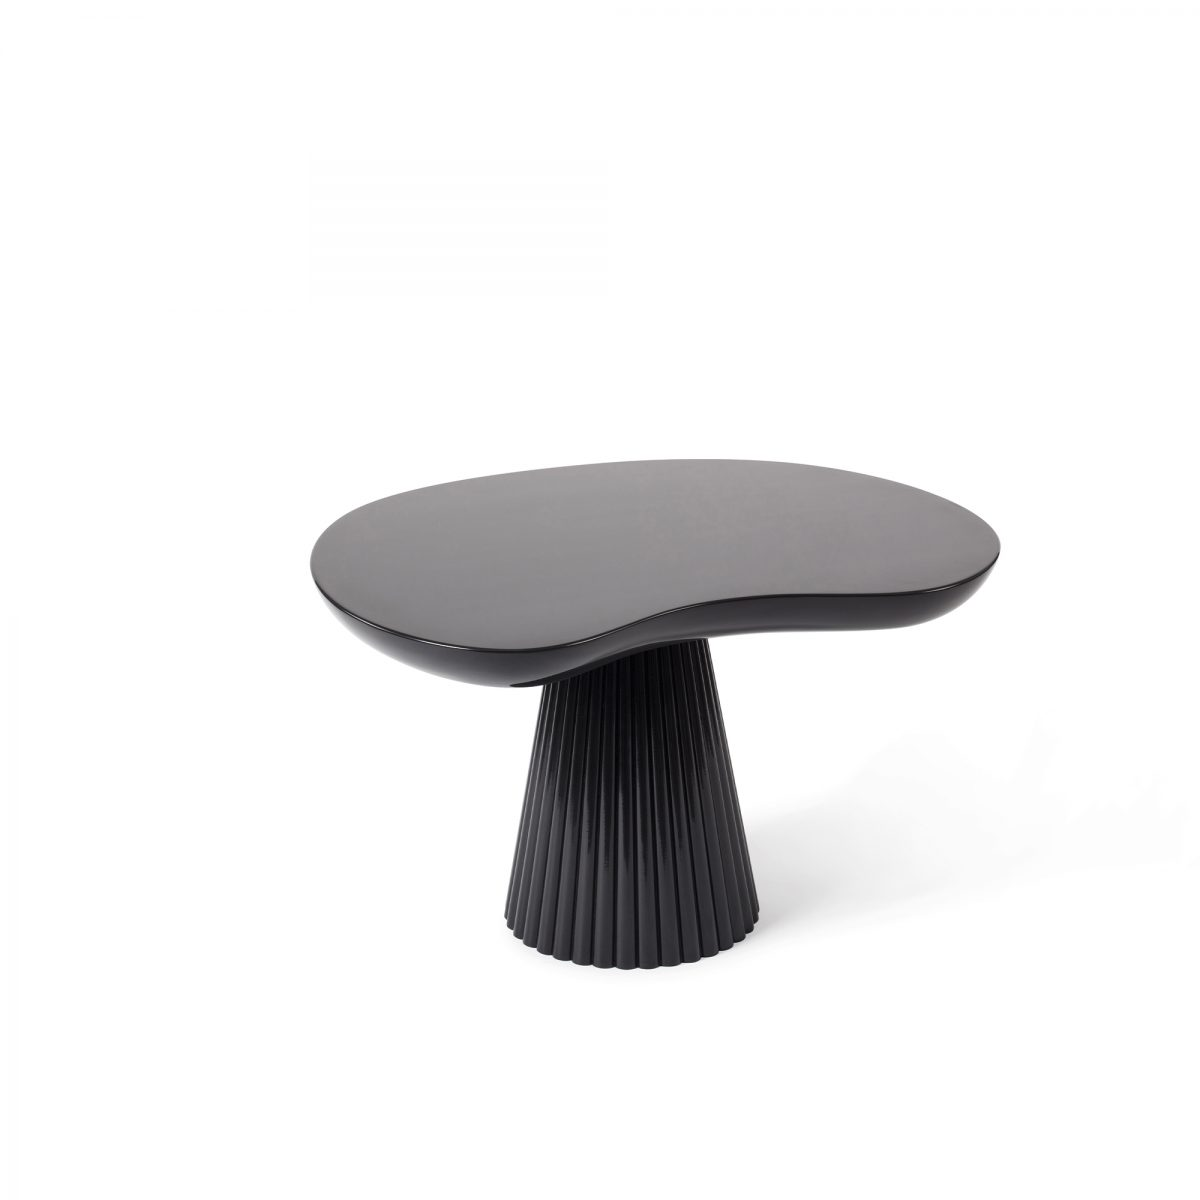 1-mira_tables_side_tables_black